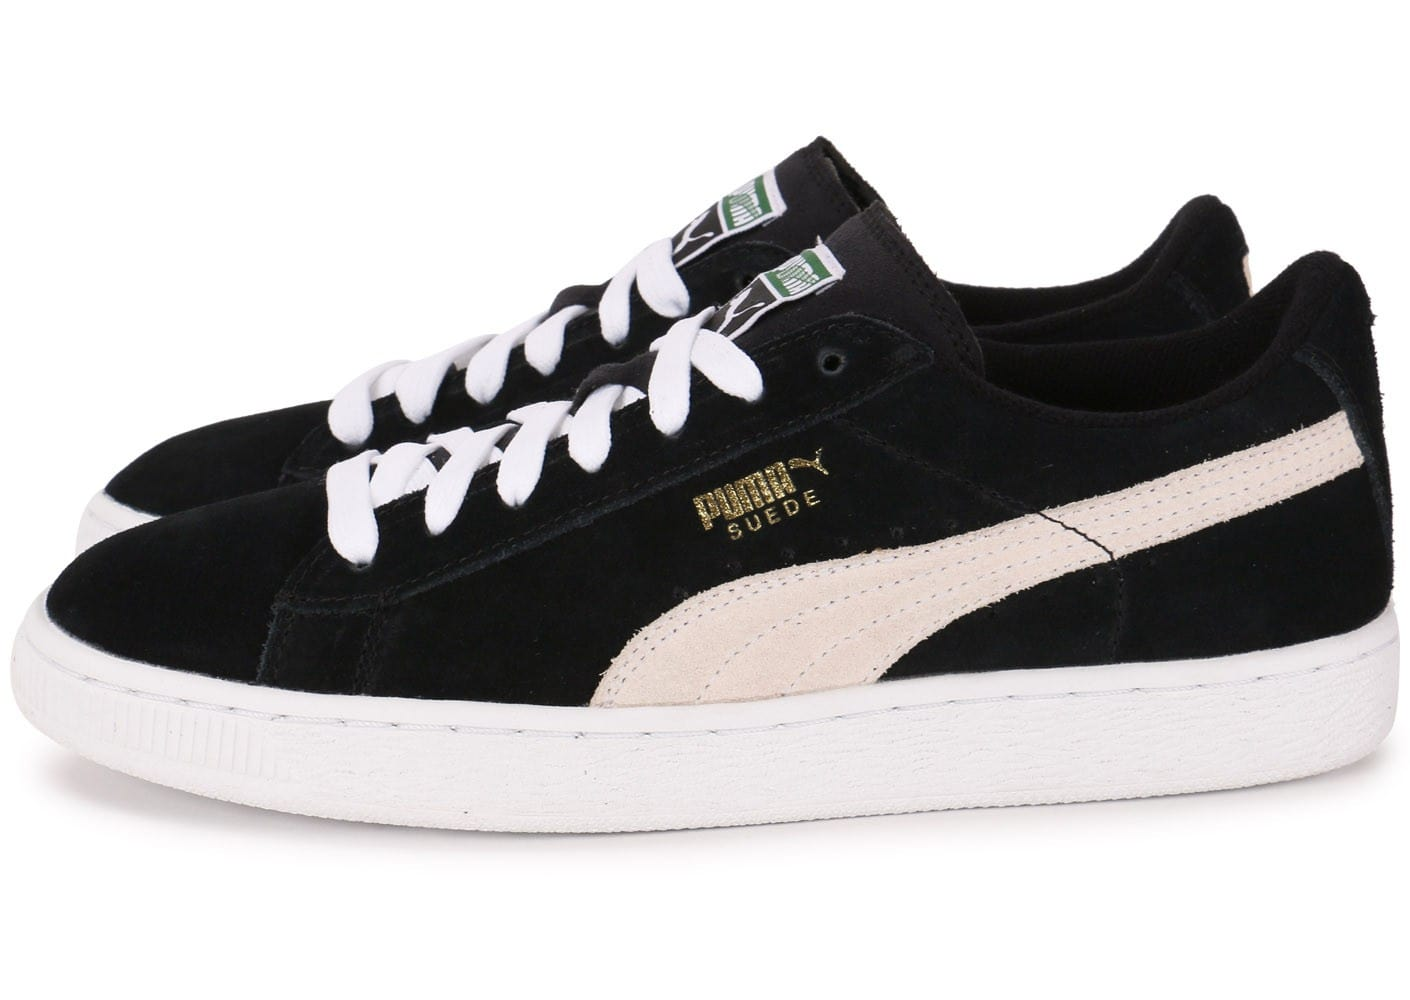 puma suede junior noire chaussures chaussures chausport. Black Bedroom Furniture Sets. Home Design Ideas